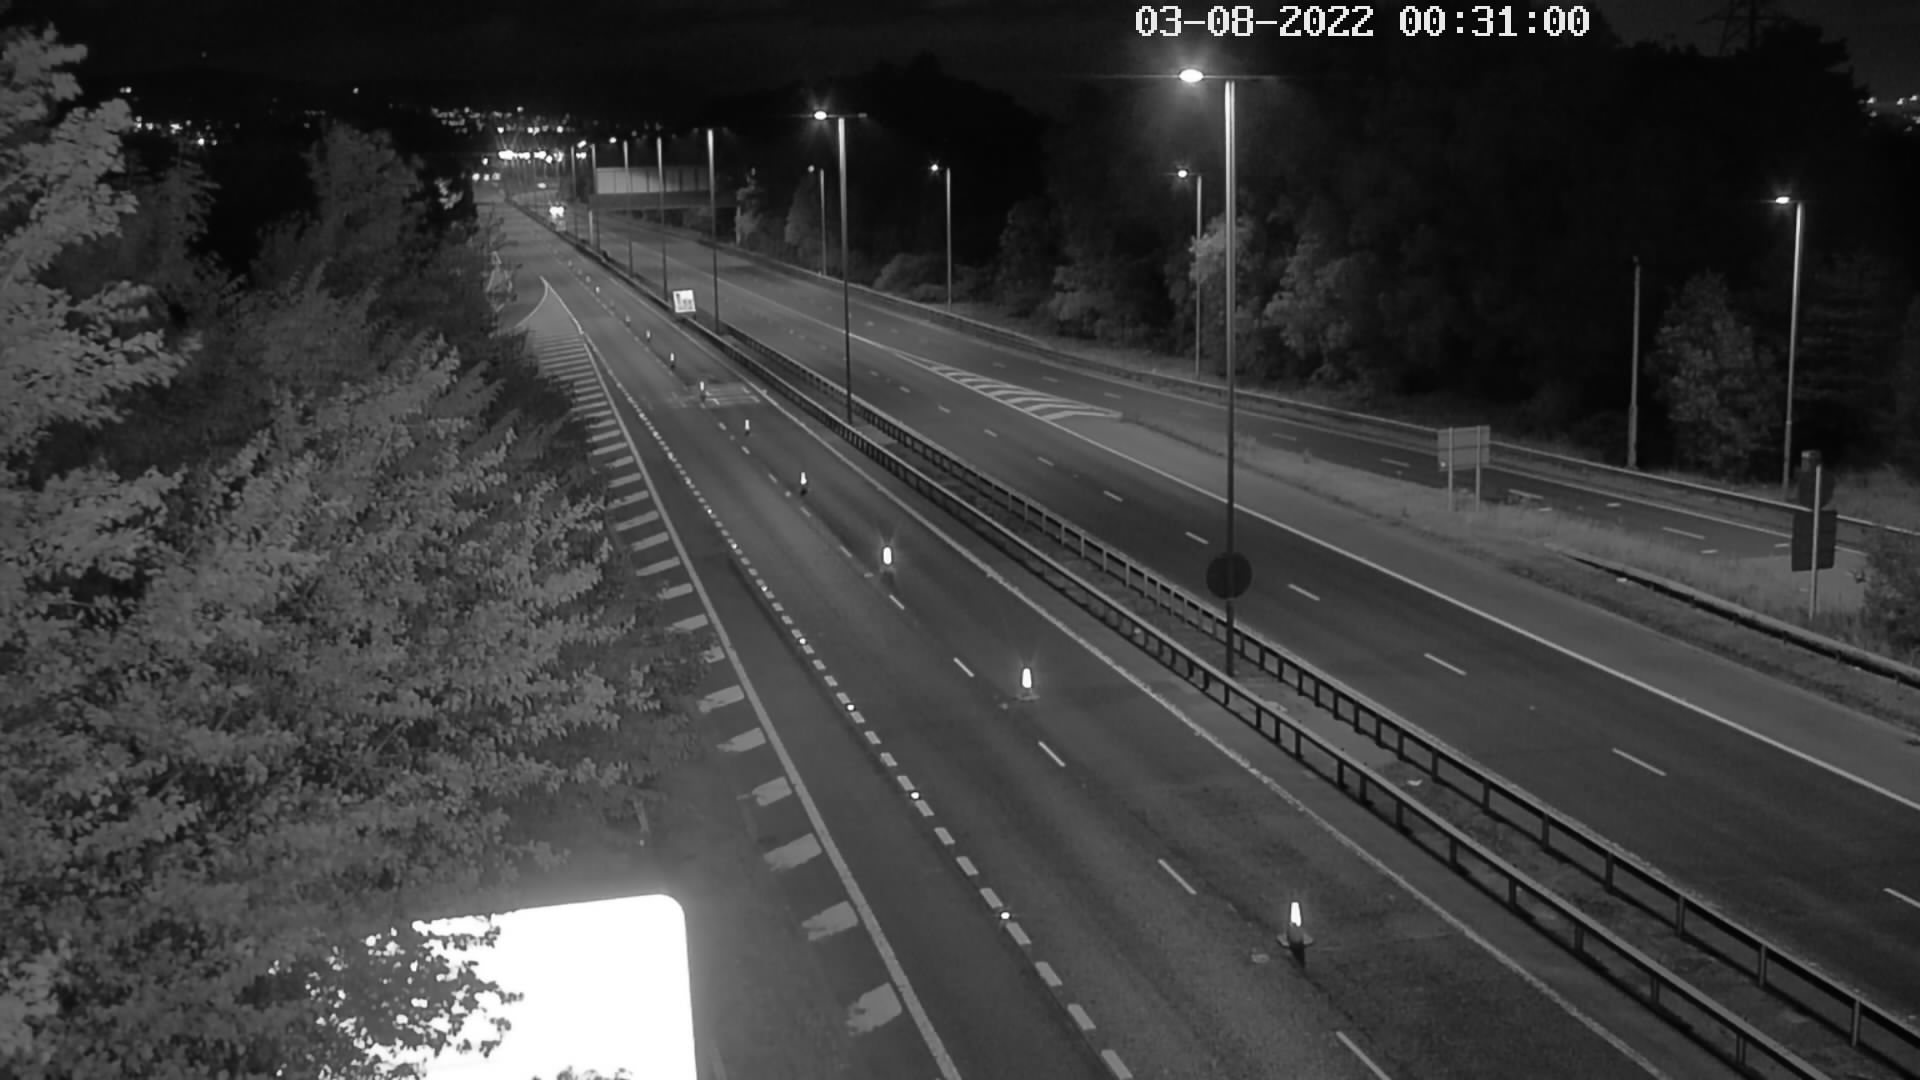 CCTV Camera image for M1 - Blacks Rd - Jct 3